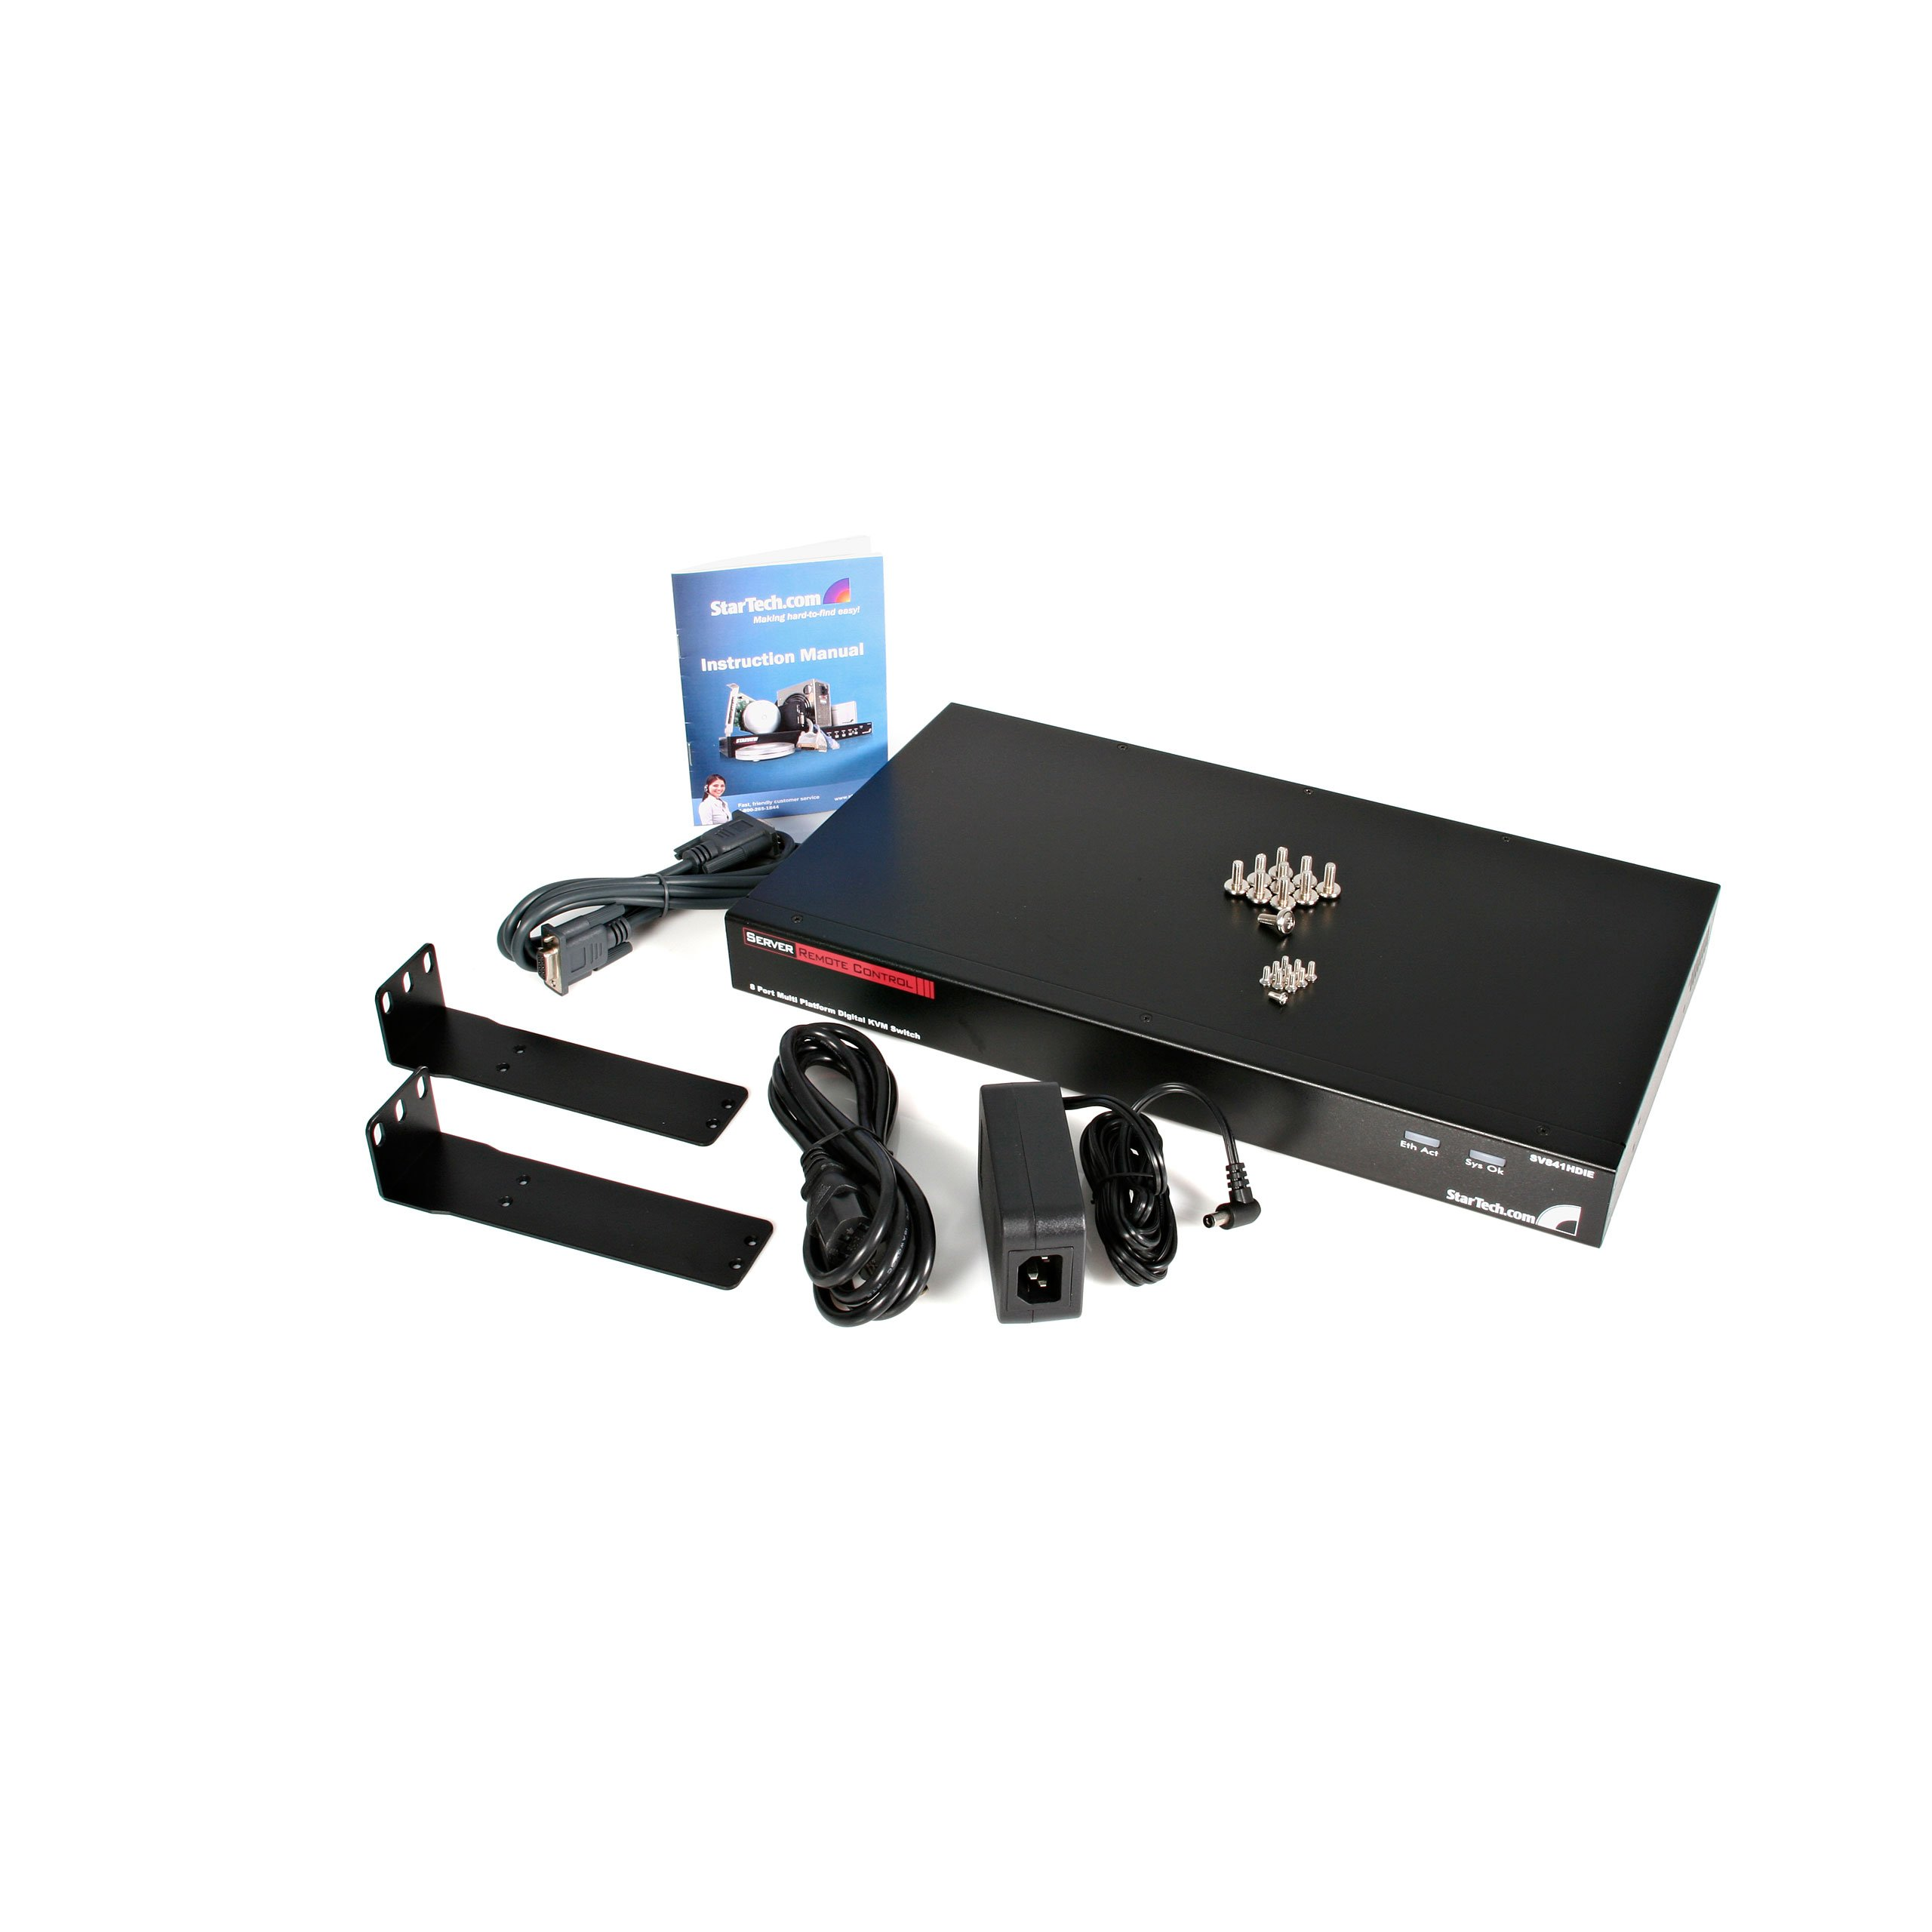 StarTech.com 8 Port Rack Mount USB PS/2 Digital IP KVM Switch (SV841HDIE) by StarTech (Image #3)